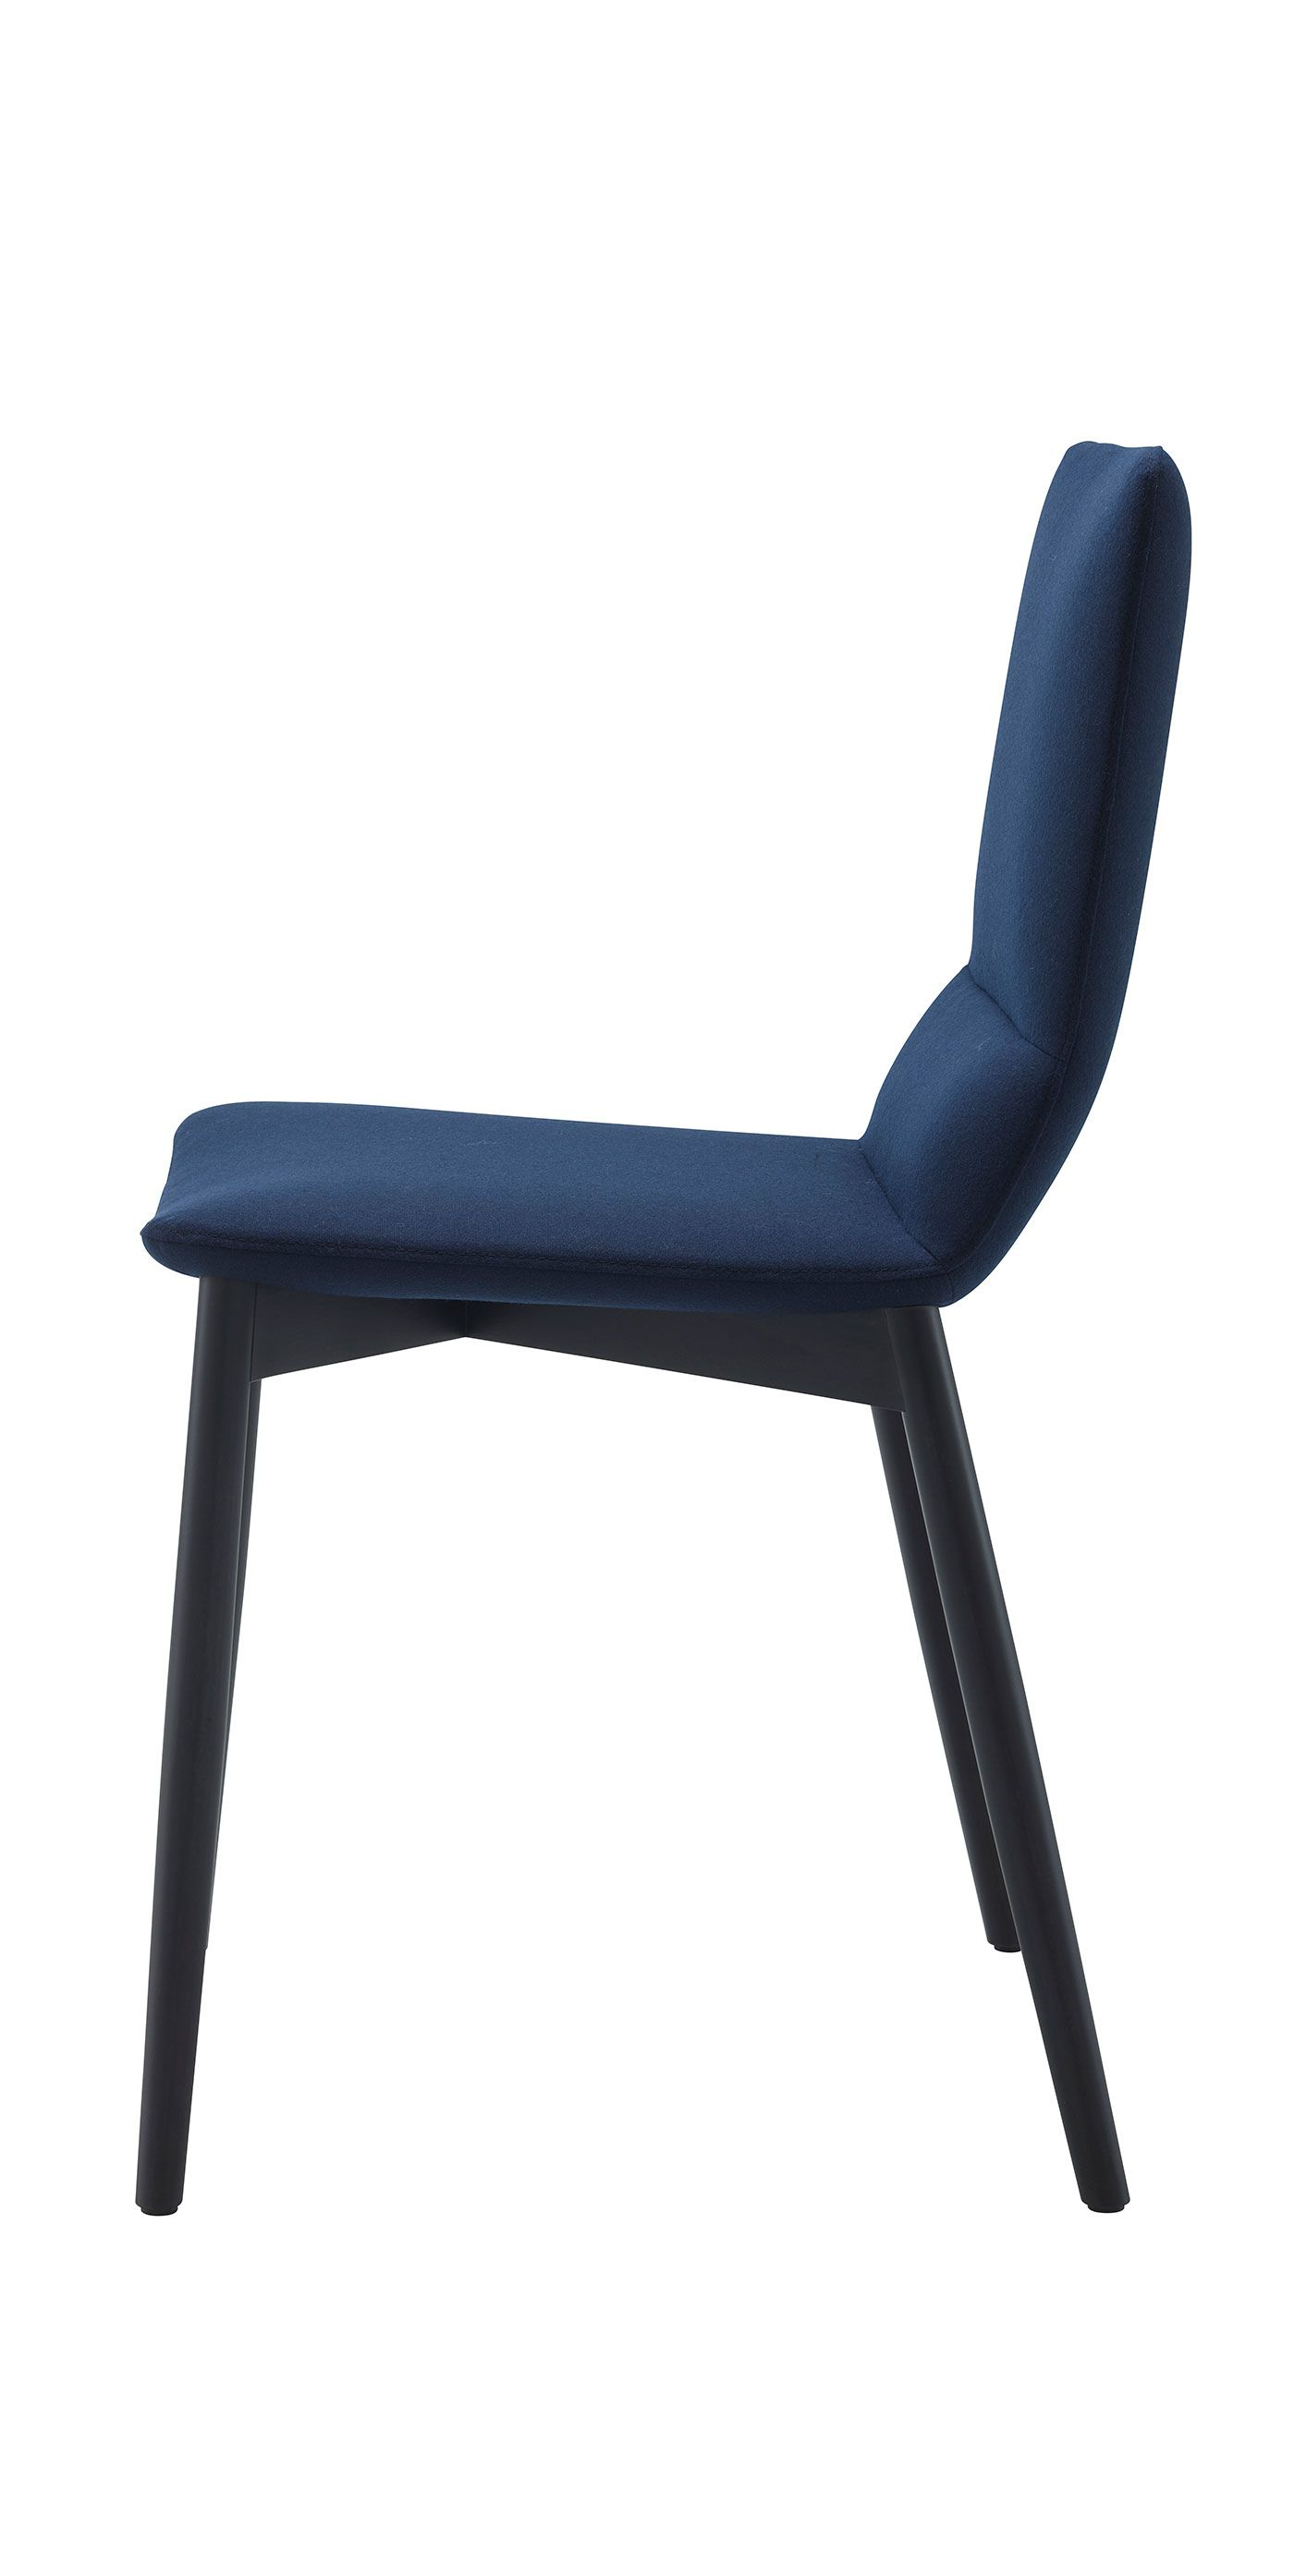 . Bendchair dining chair  designed by Peter Maly for Ligne Roset